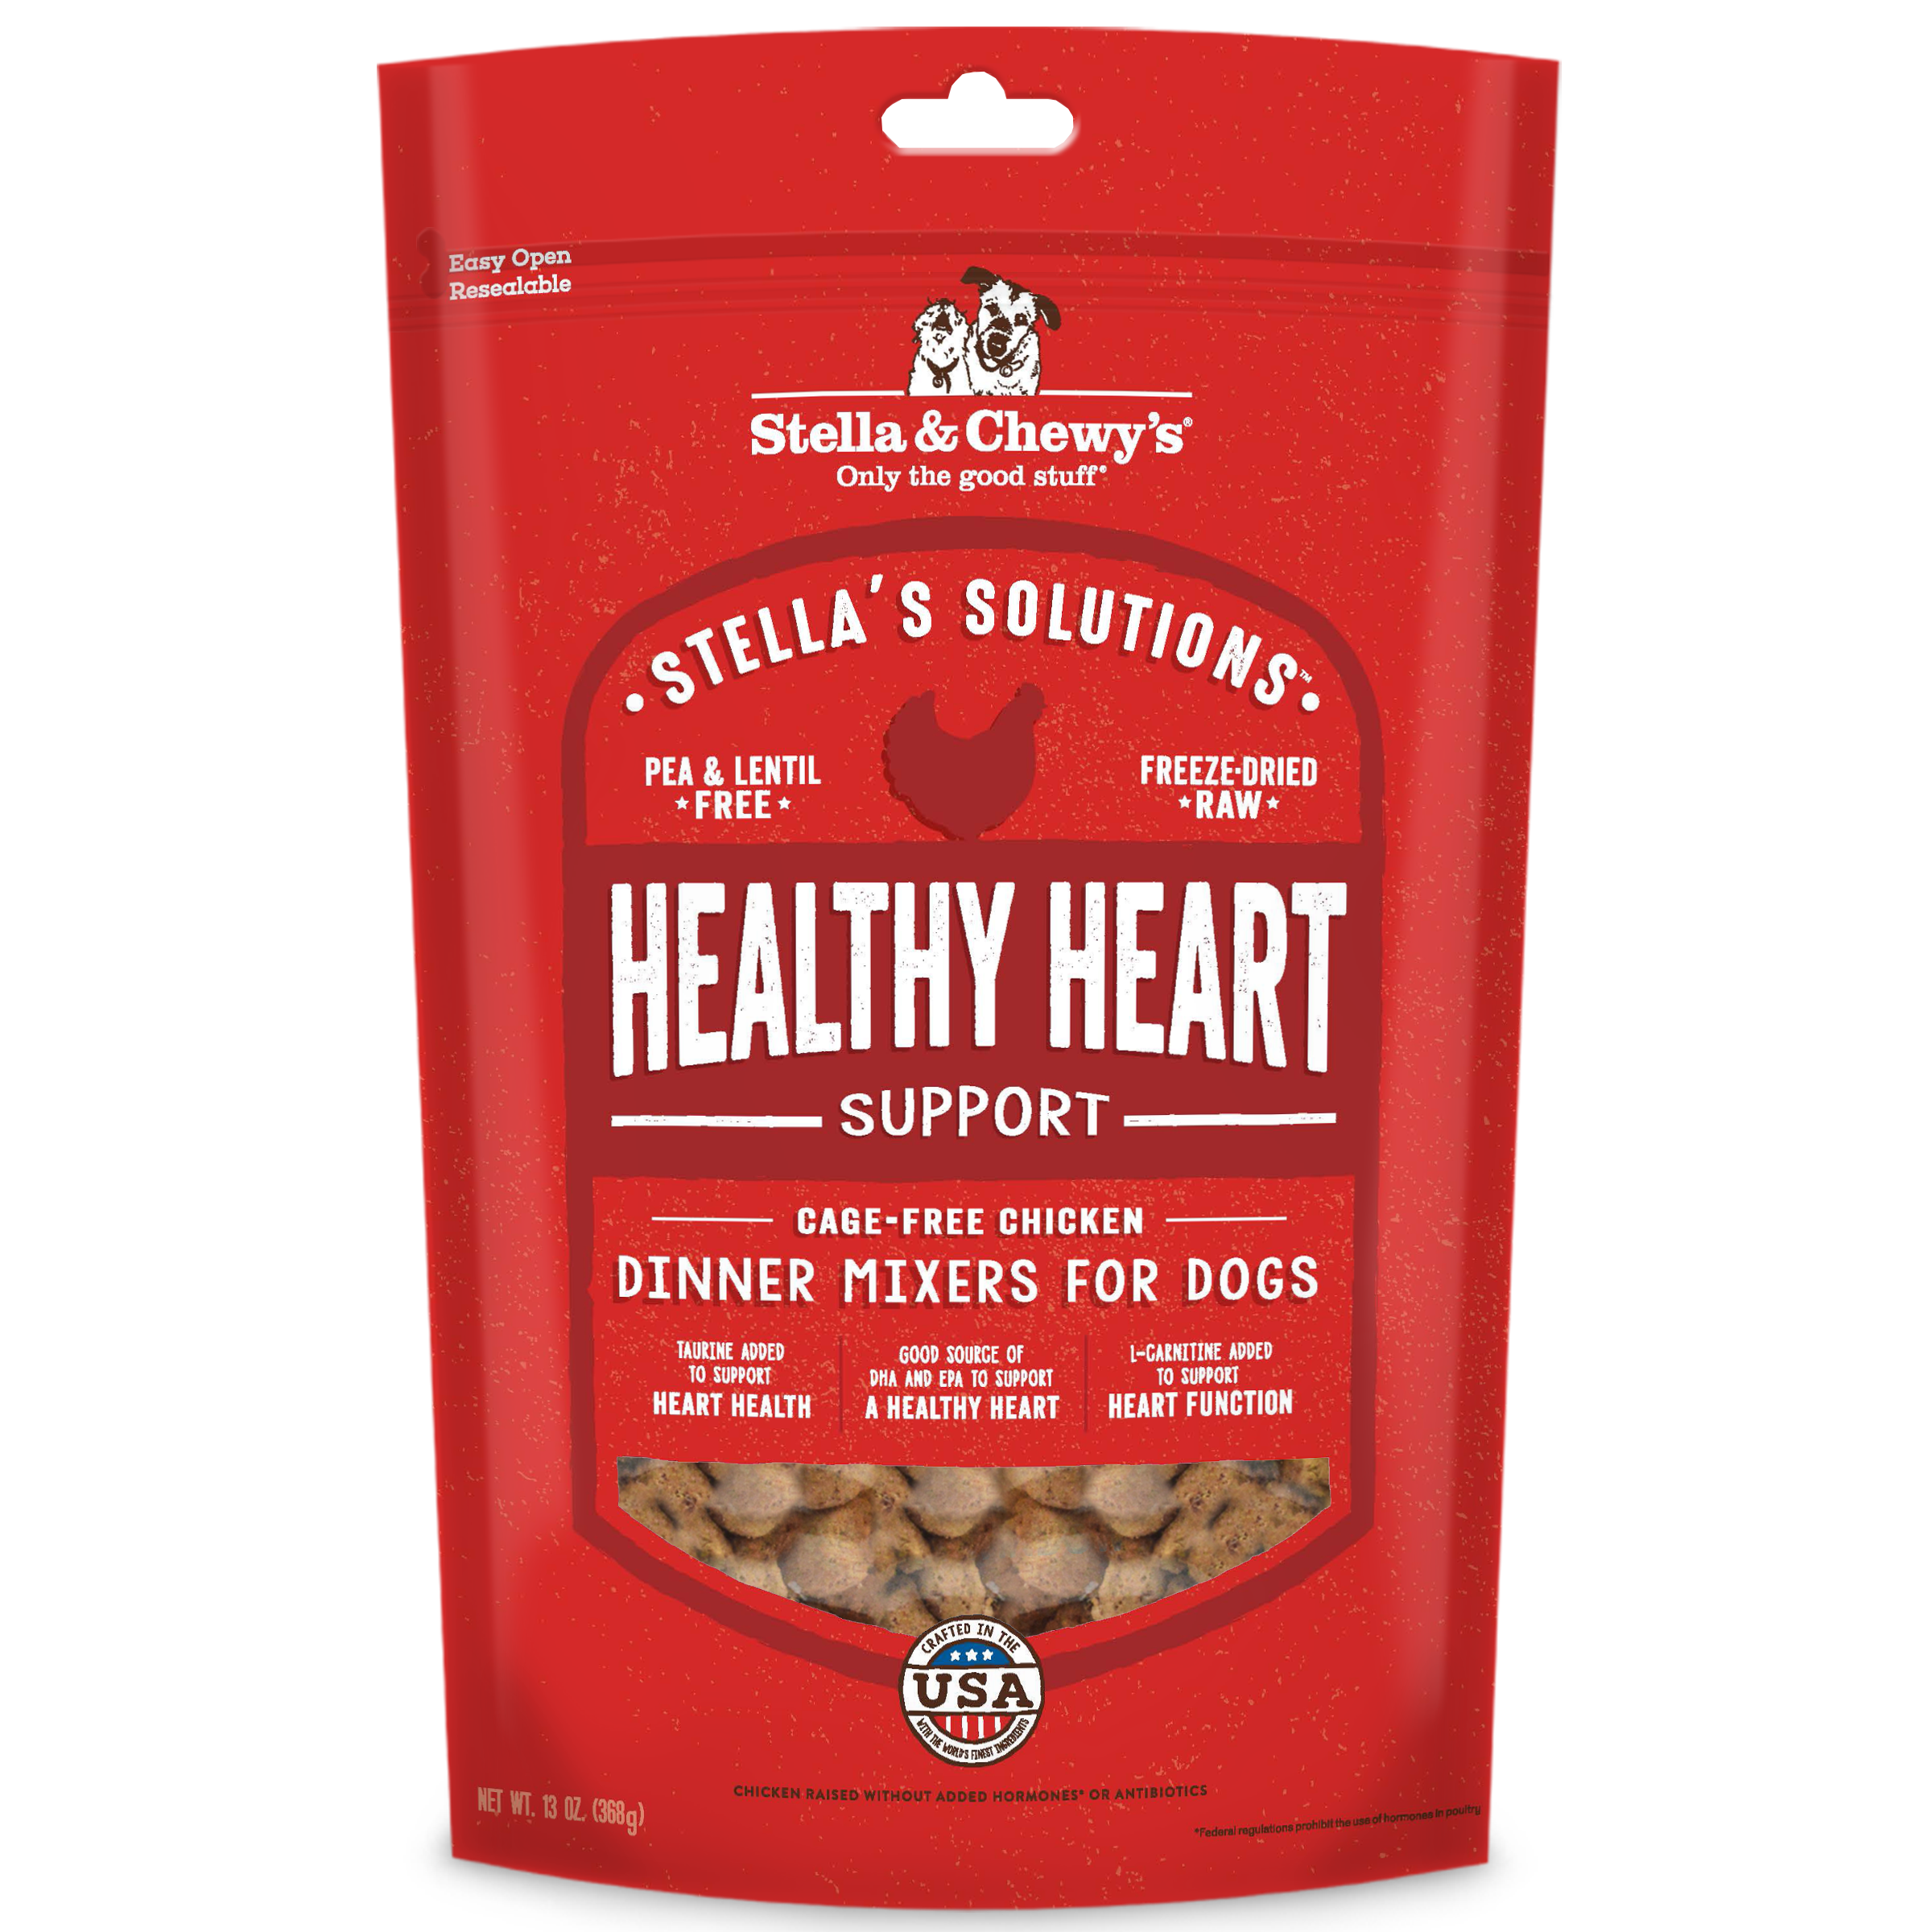 Stella & Chewy's Stella's Solutions Healthy Heart Support Chicken Freeze-Dried Raw Dog Food, 234-g